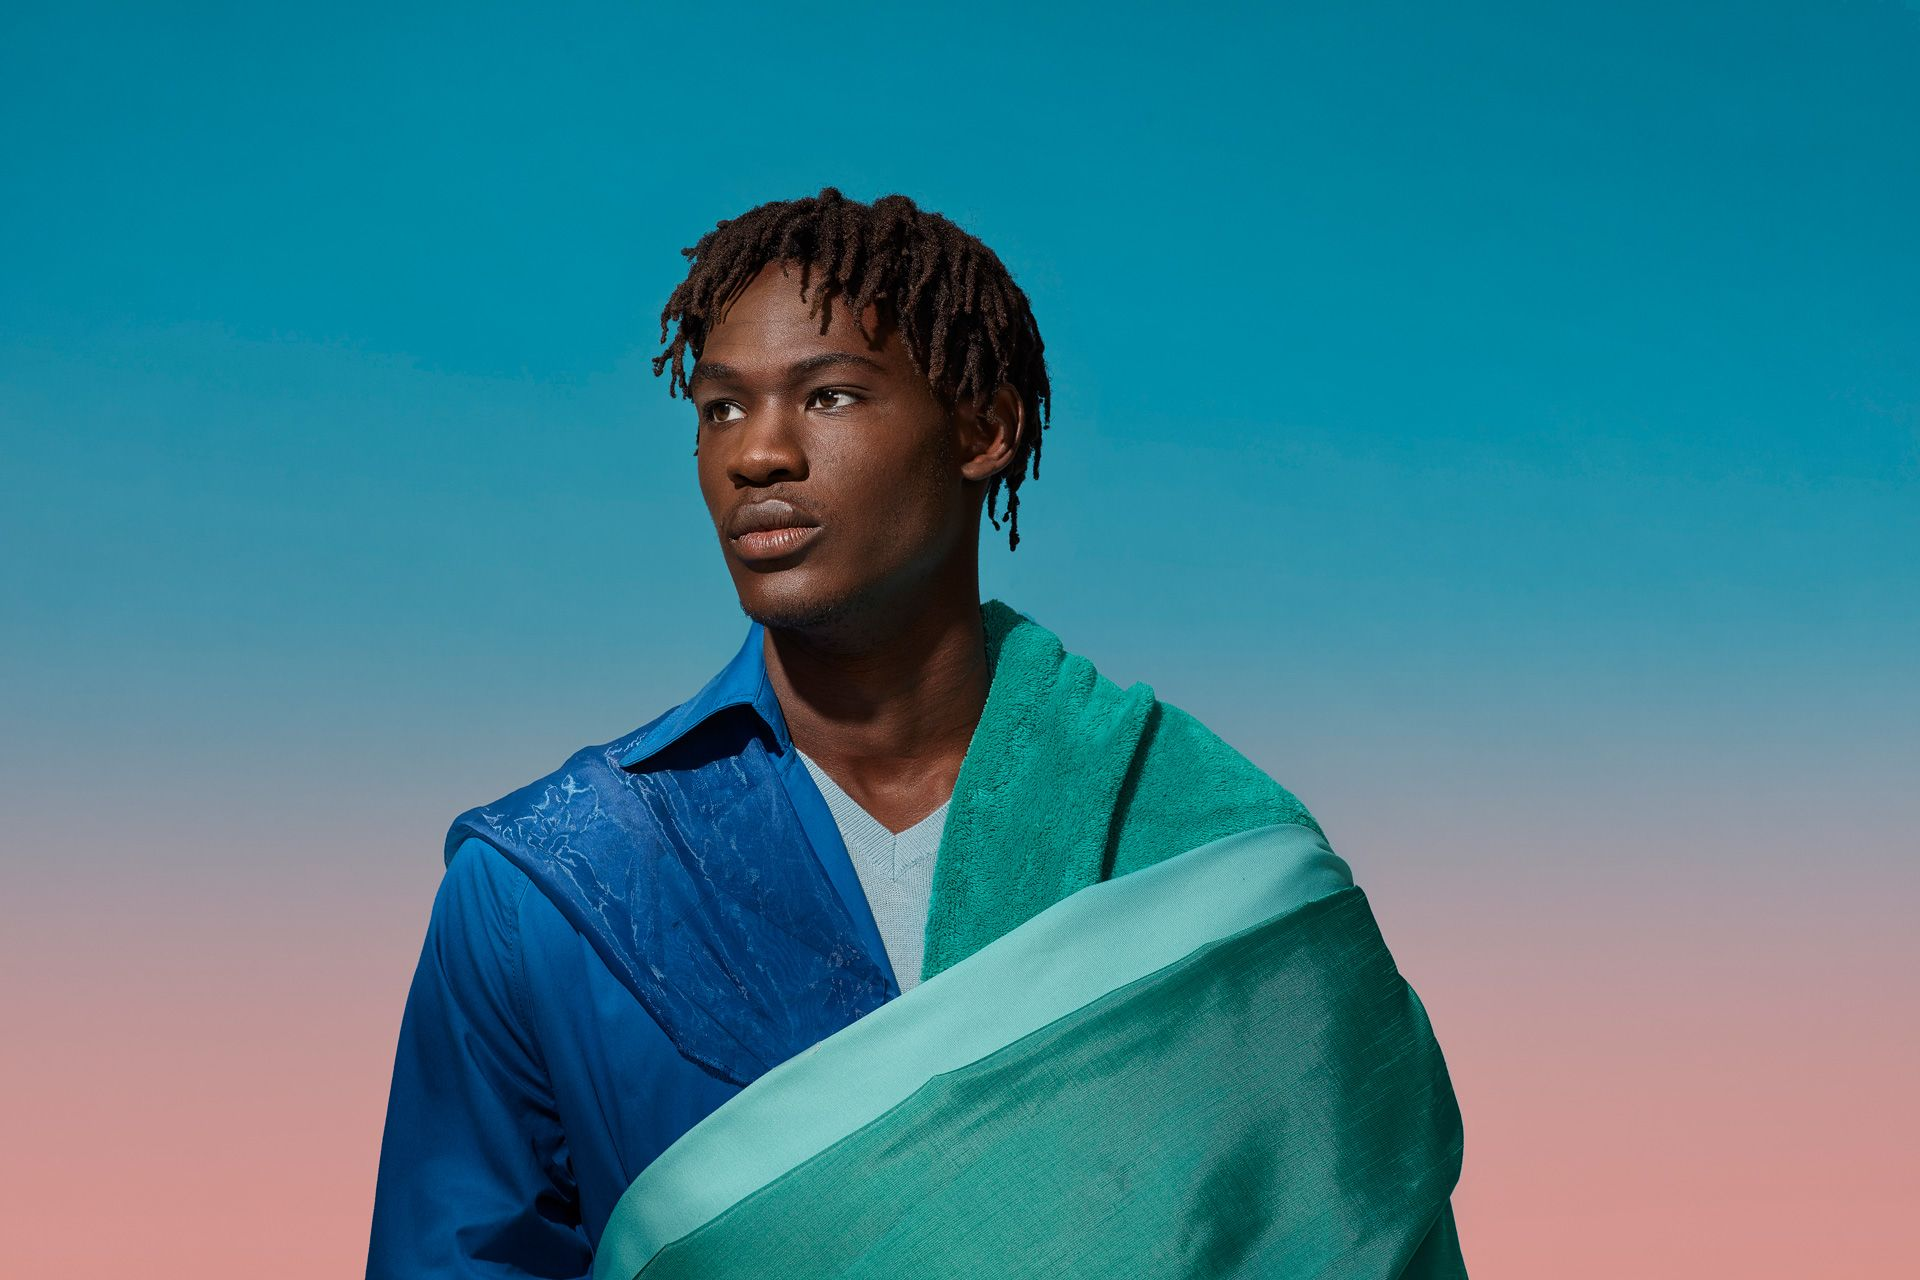 black young man looking ahead dressed in layered pieces of fabric giving a sari feel by Simon Duhamel for SAND